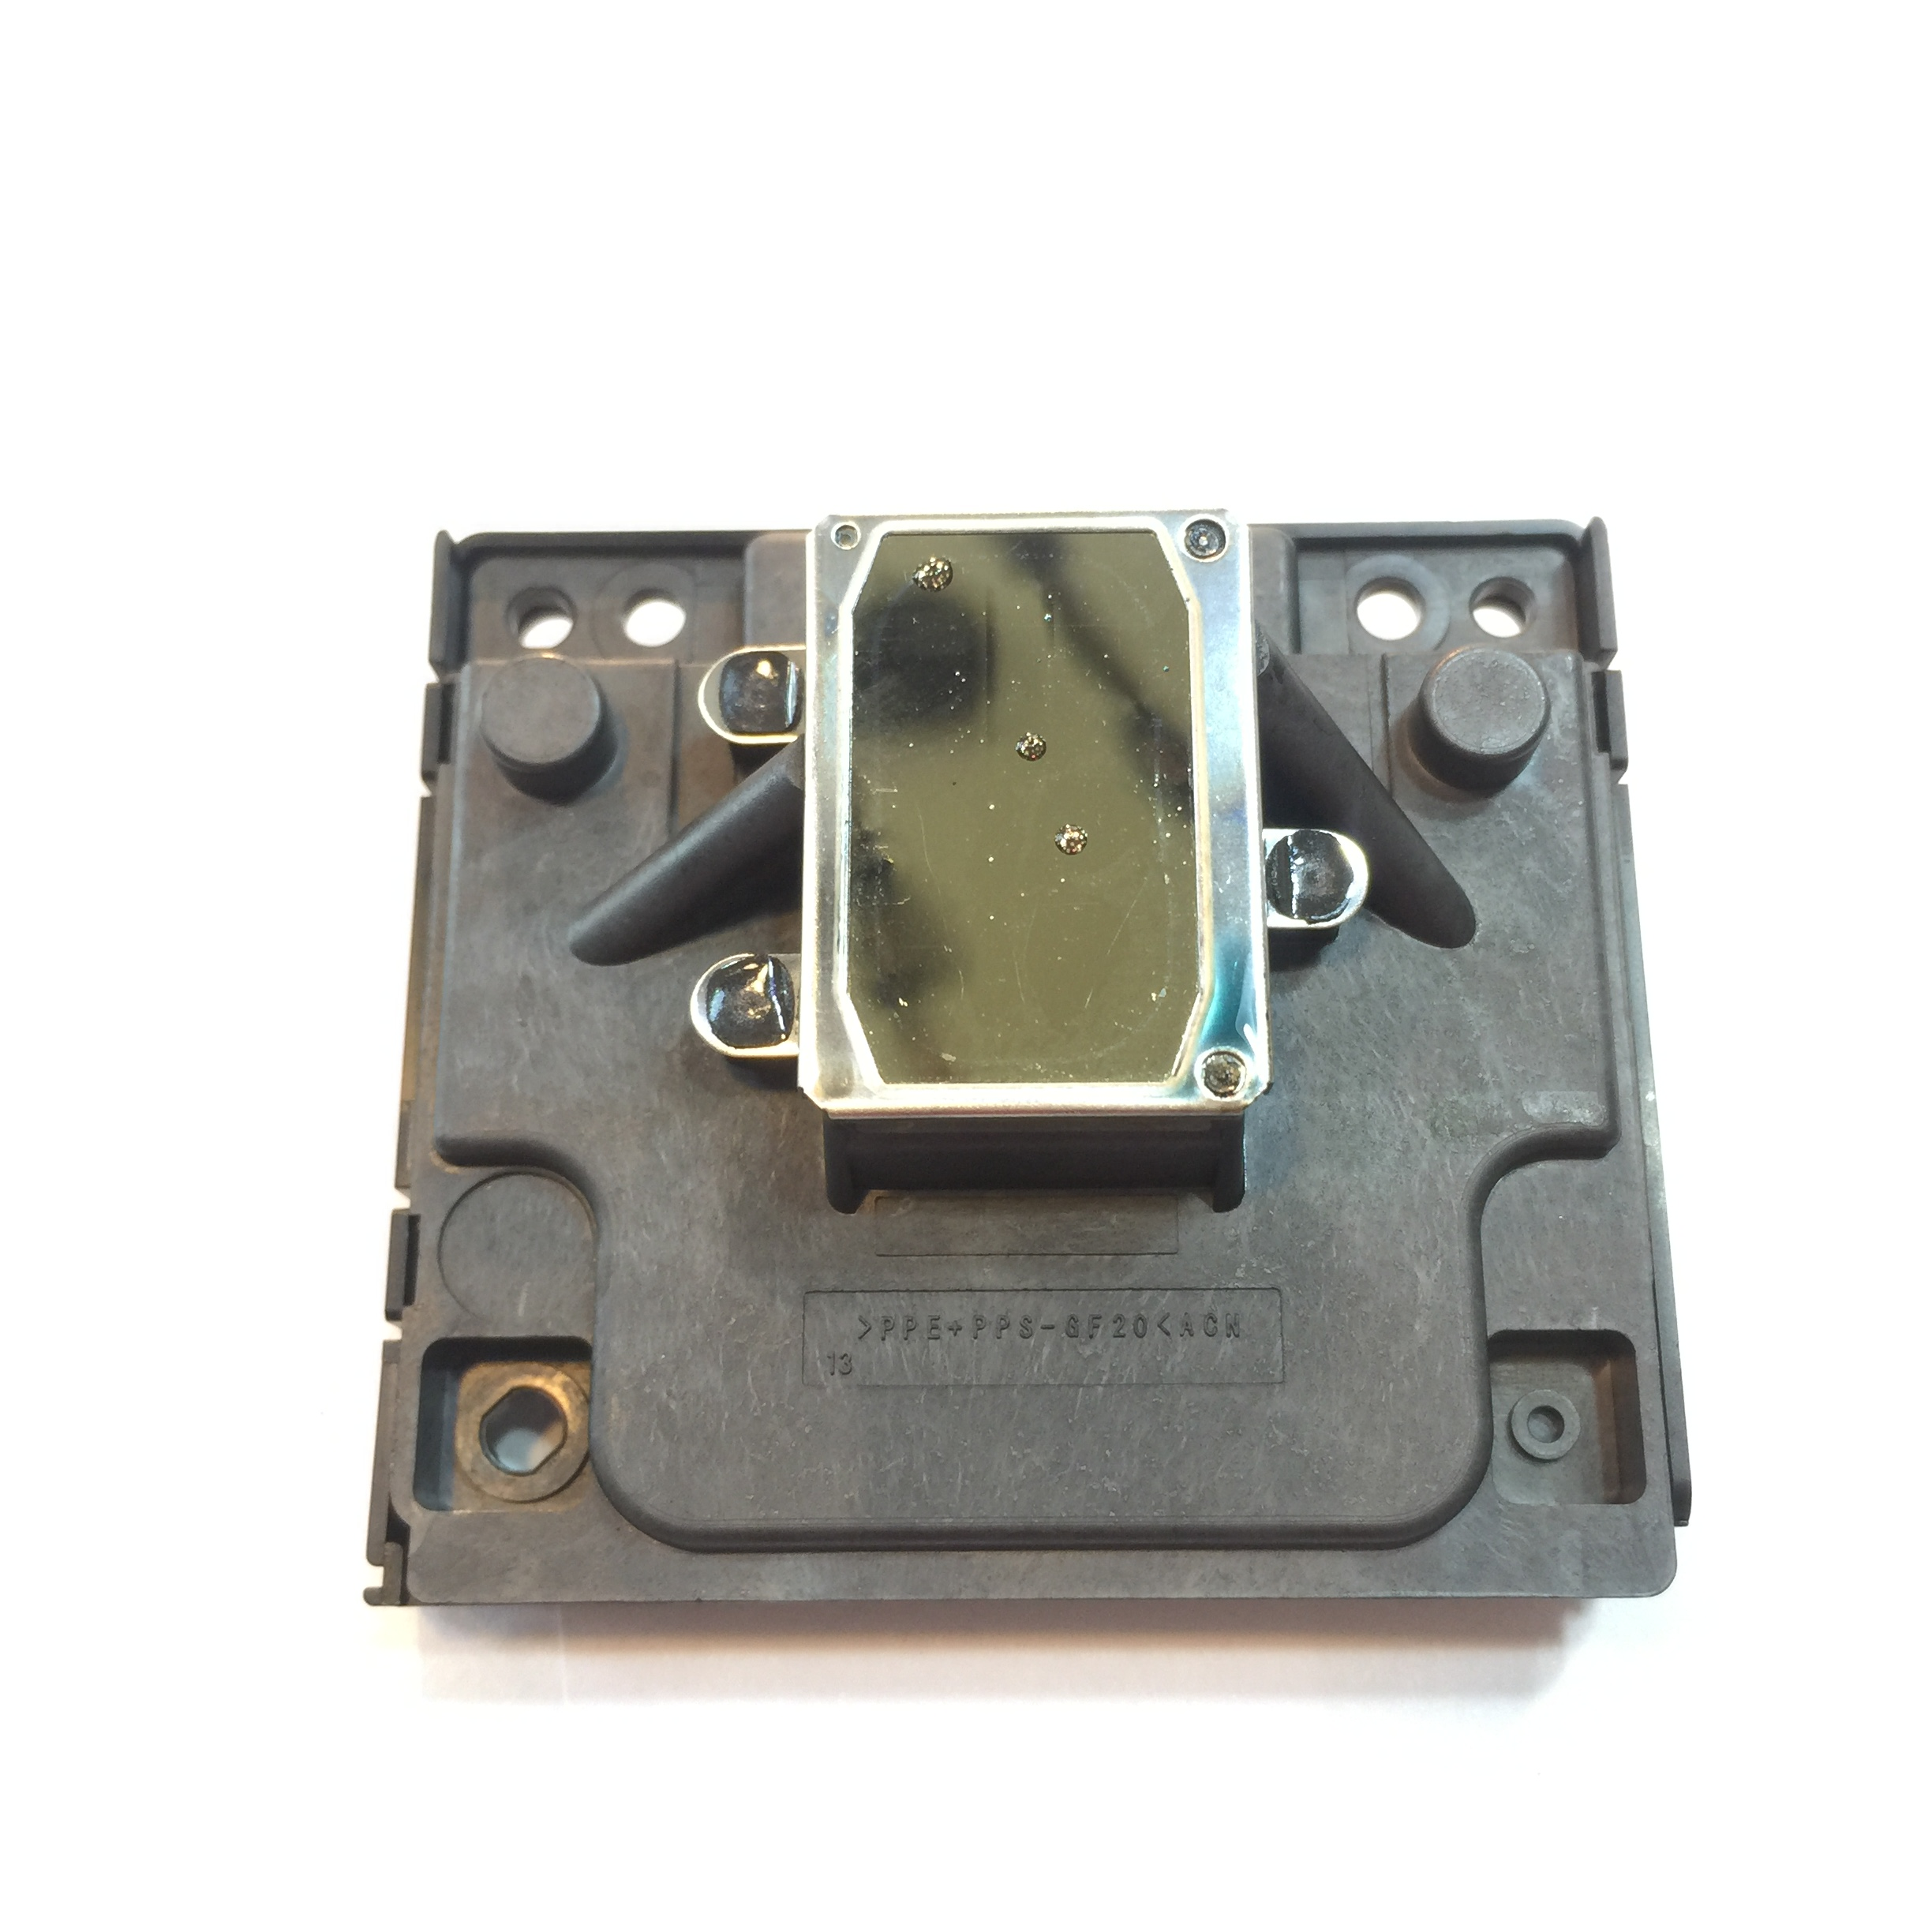 Refurbished PRINTHEAD brand Print head for EPSON ME350 ME330 ME33 ME2 ME200 ME30 C90 SX235W printer image